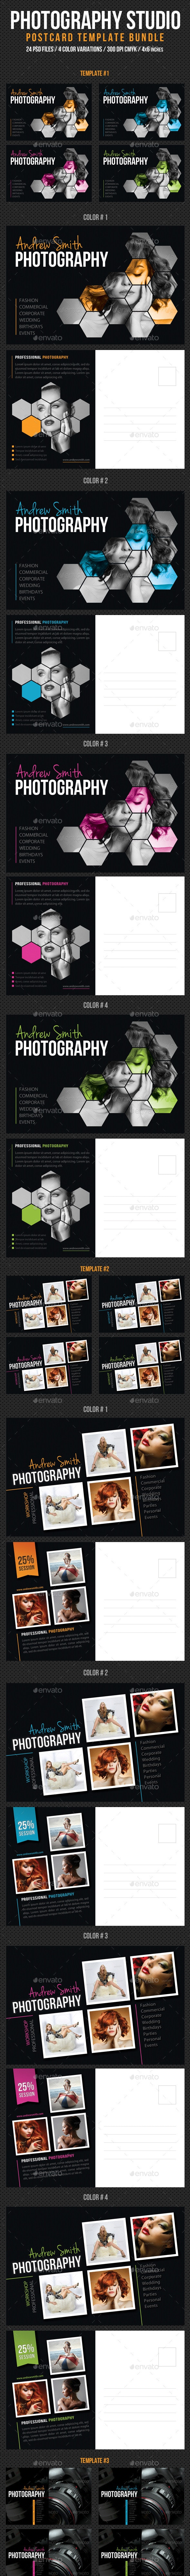 3 in 1 Photography Studio Postcard Template Bundle - Cards & Invites Print Templates